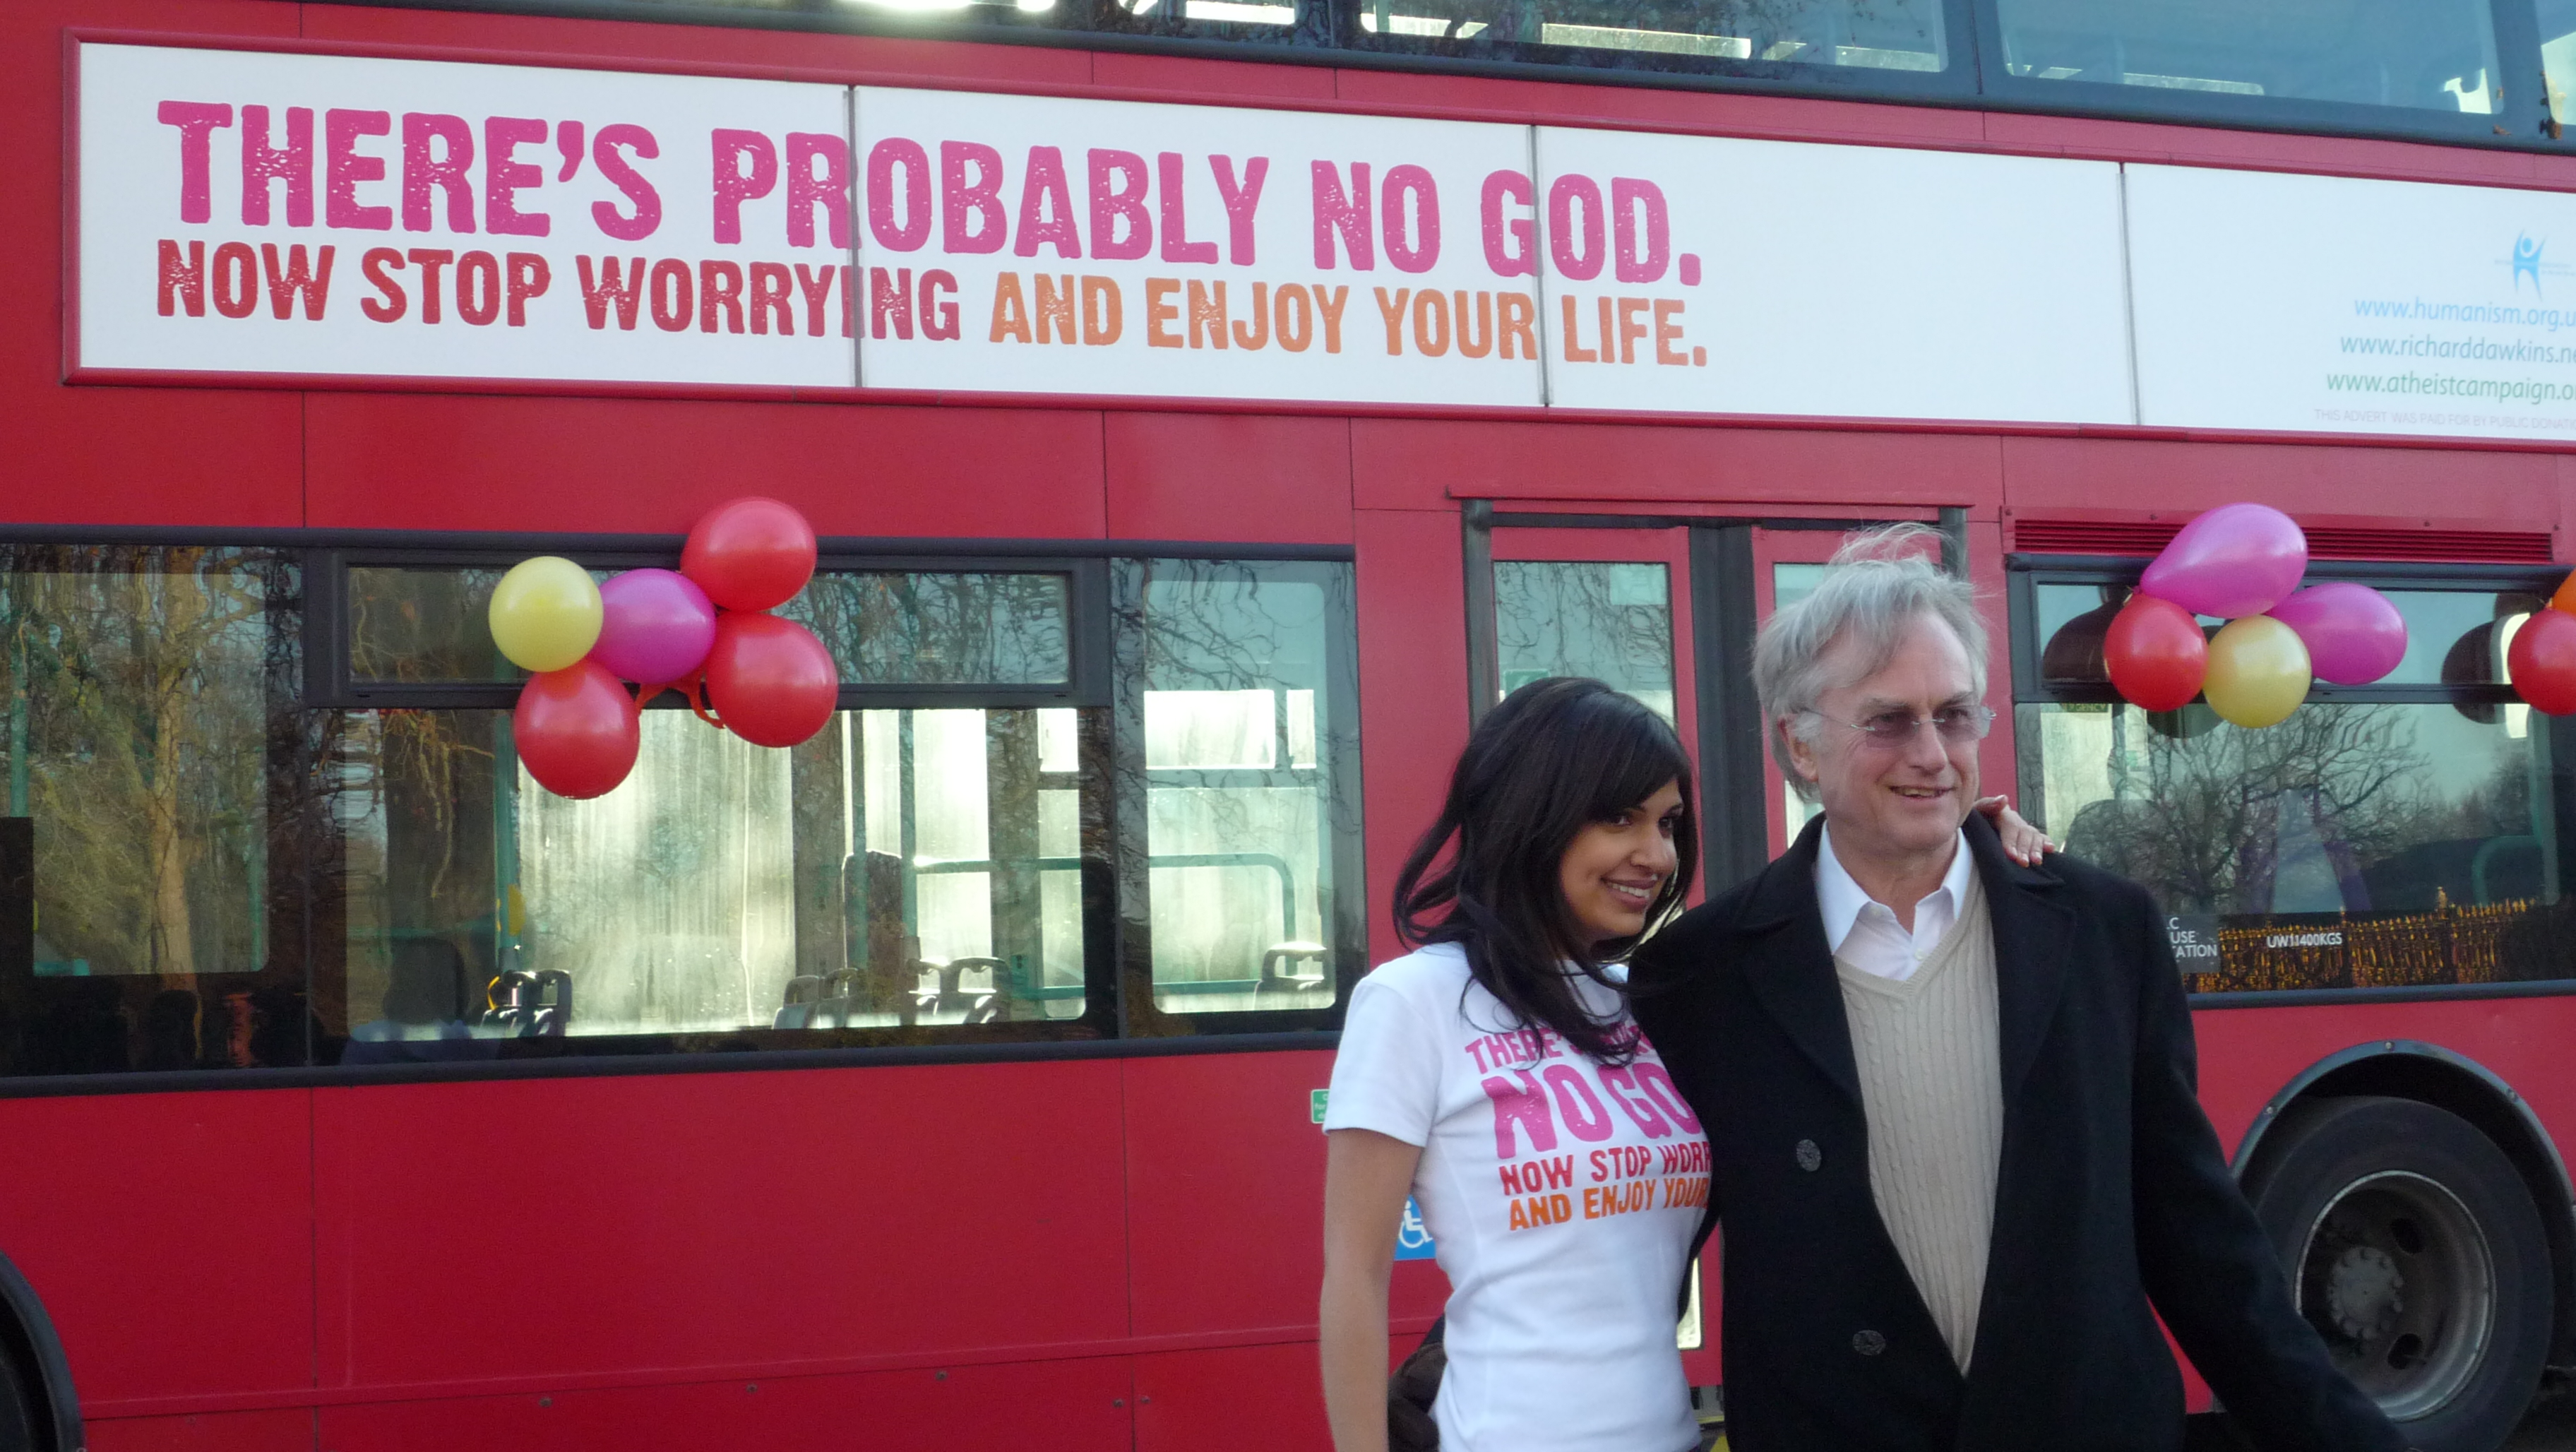 File:Ariane Sherine and Richard Dawkins at the Atheist Bus Campaign launch.jpg - Wikimedia Commons